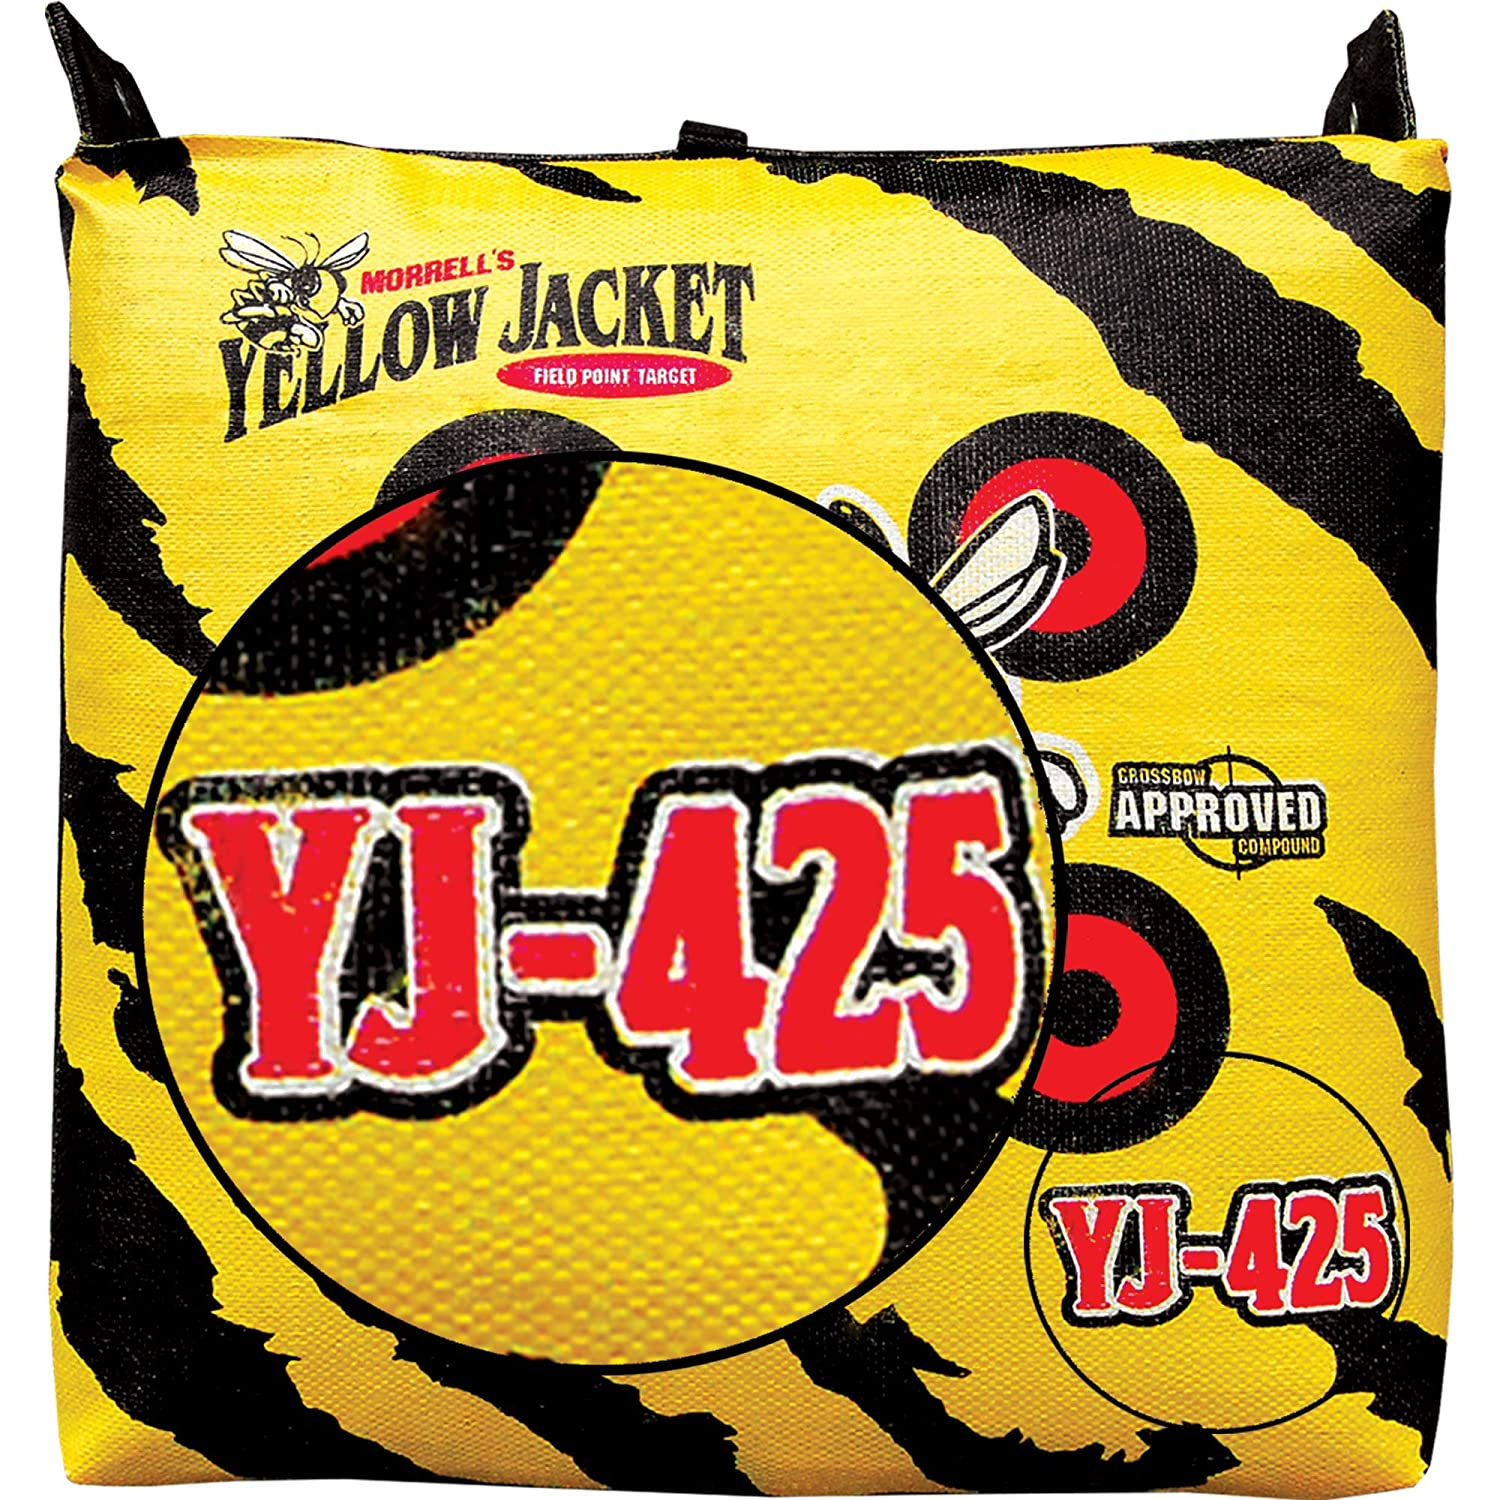 for Crossbows and Compound Bows Morrell Yellow Jacket YJ-350 Field Point Bag Archery Target